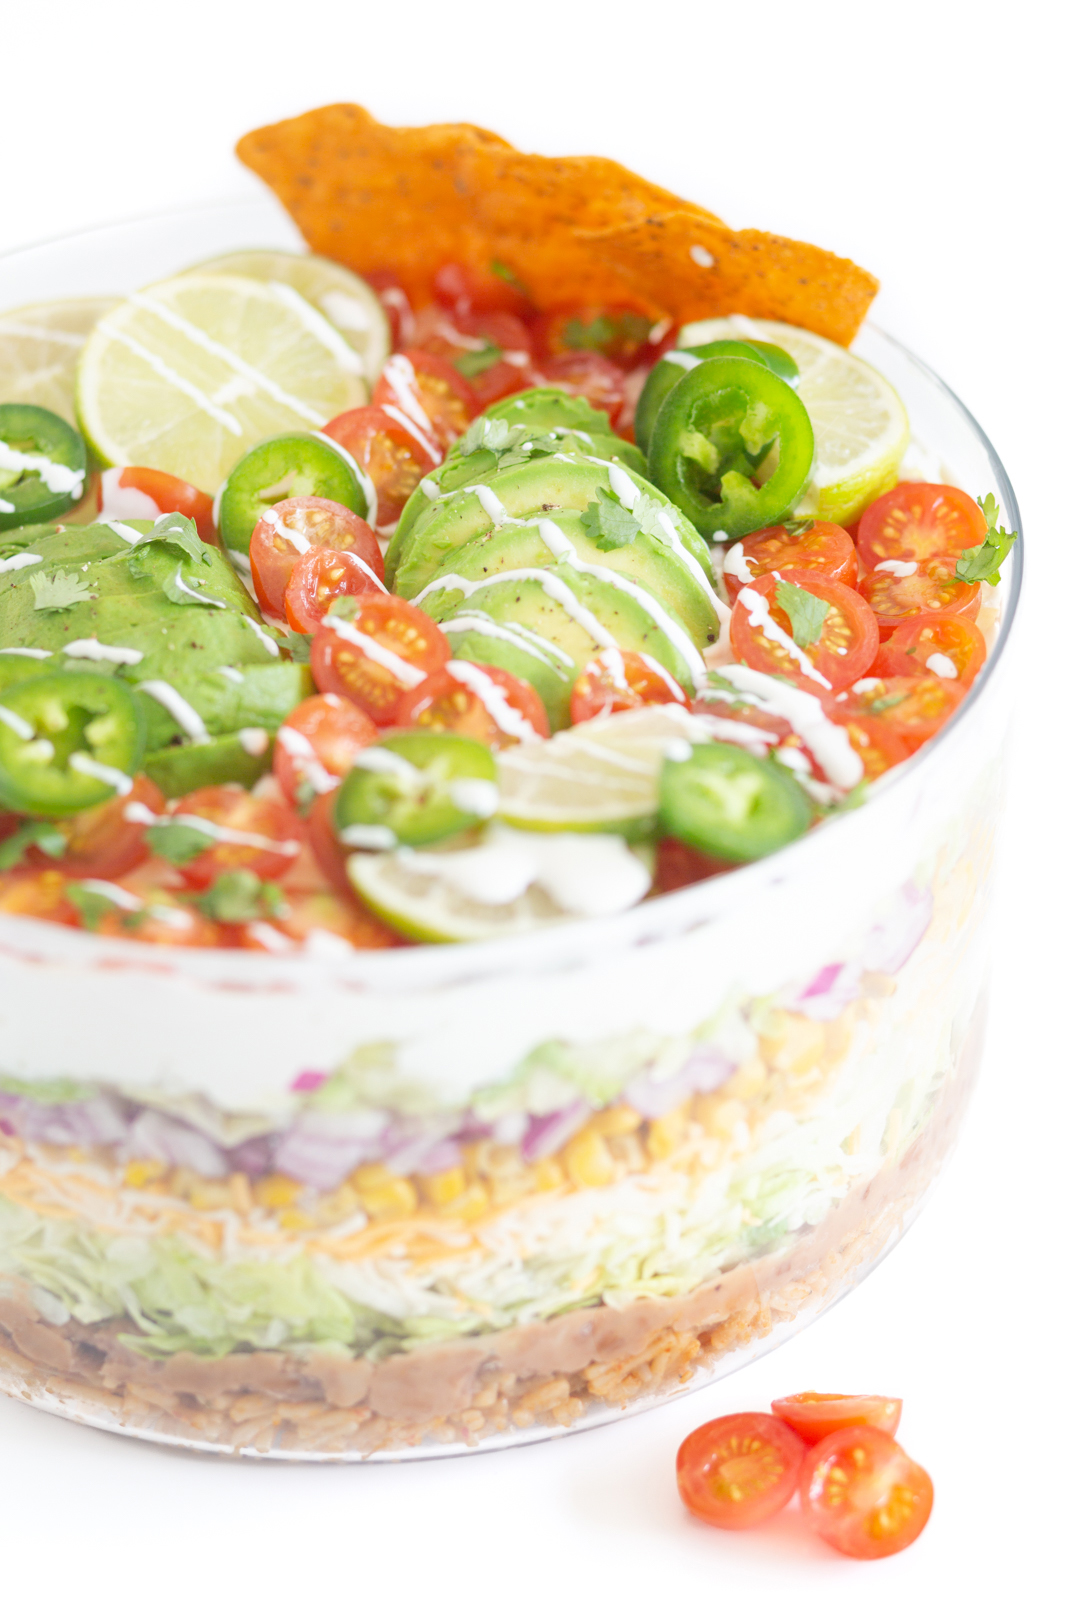 up close view of a pretty mexican layered salad topped with sliced avocado and halved cherry tomatoes, lime slices, cilantro